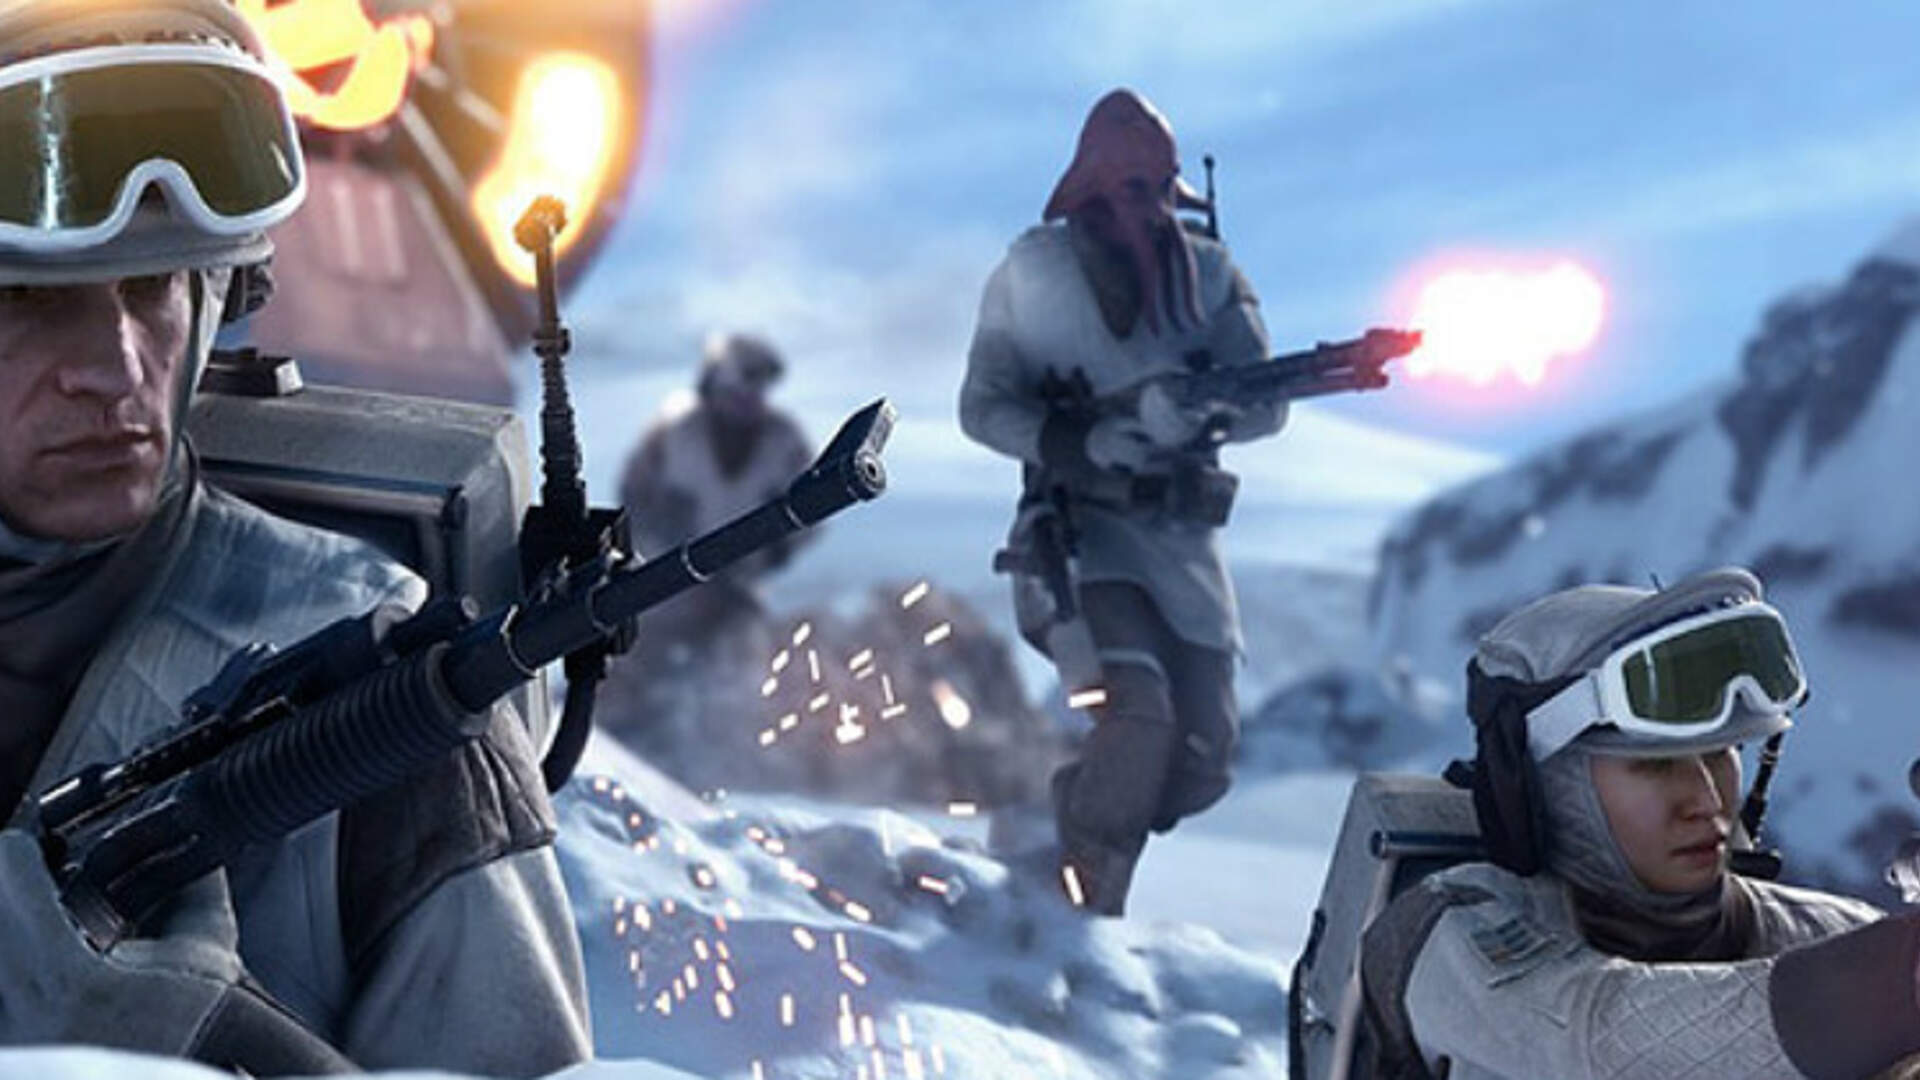 Star Wars Battlefront Impressions and Gameplay: More than Battlefield, Not Quite Battlefront